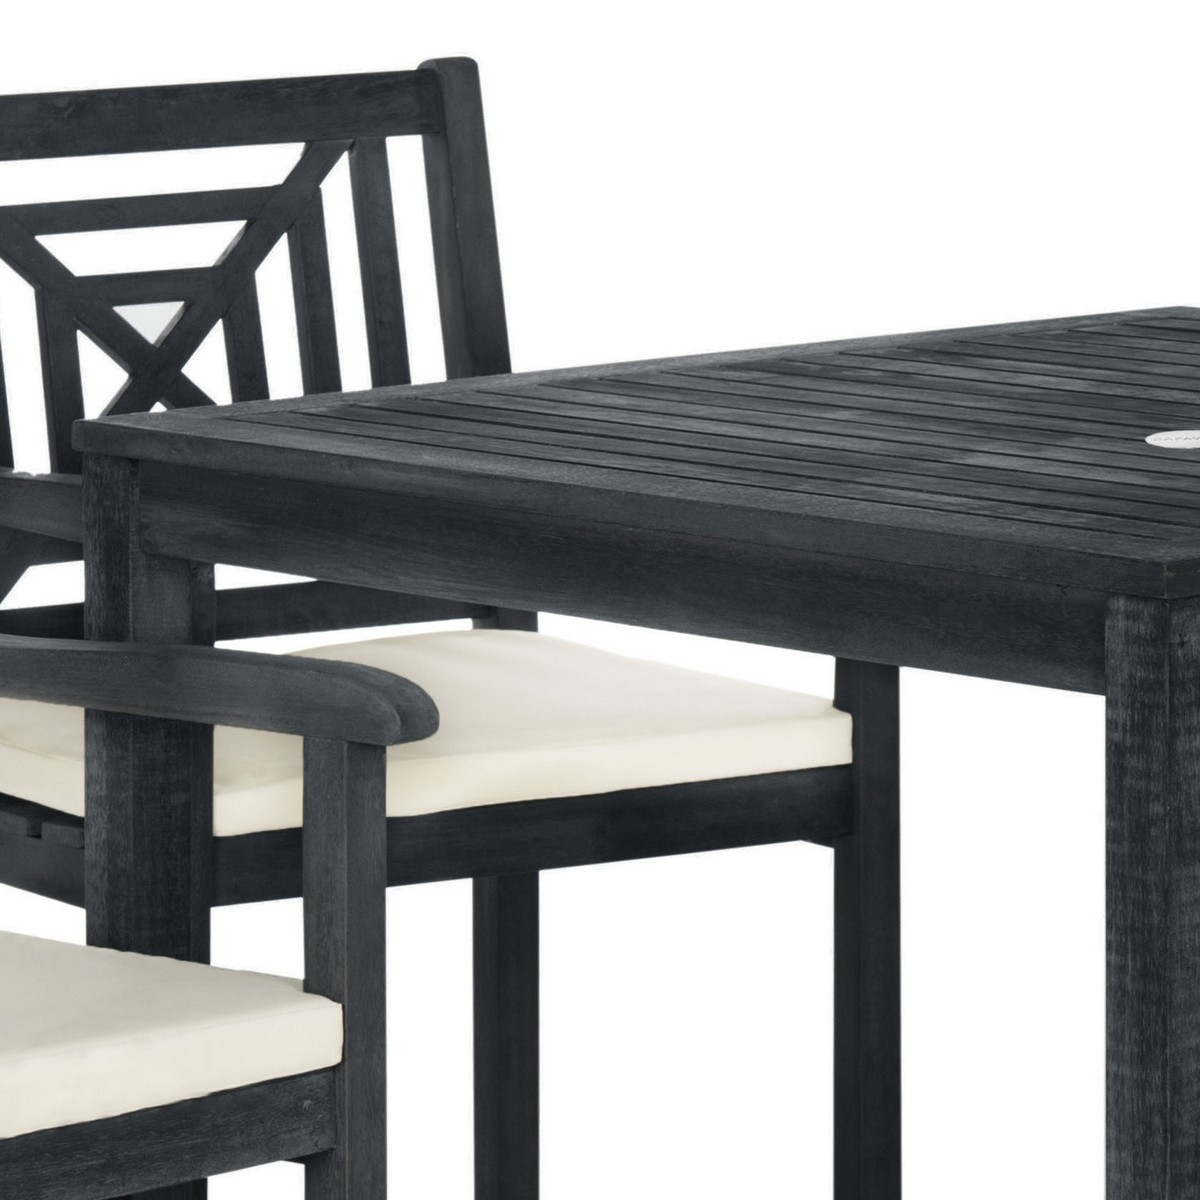 Pat6722K Patio Sets – 5 Piece Outdoor Dining Sets – Furniture In Newest Delmar 5 Piece Dining Sets (View 20 of 20)